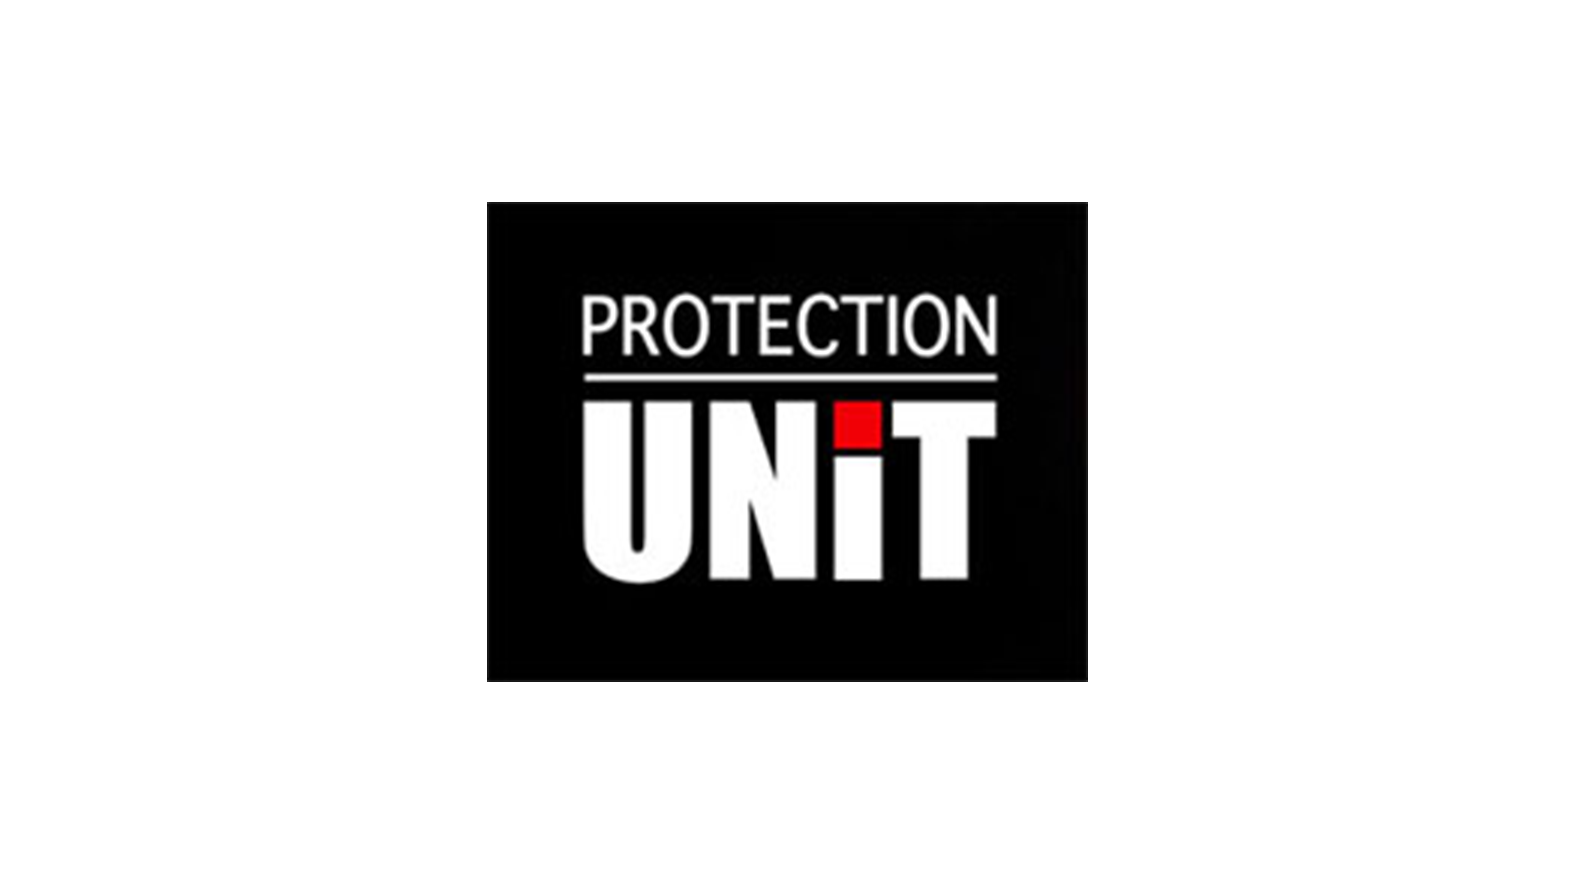 Protection Unit